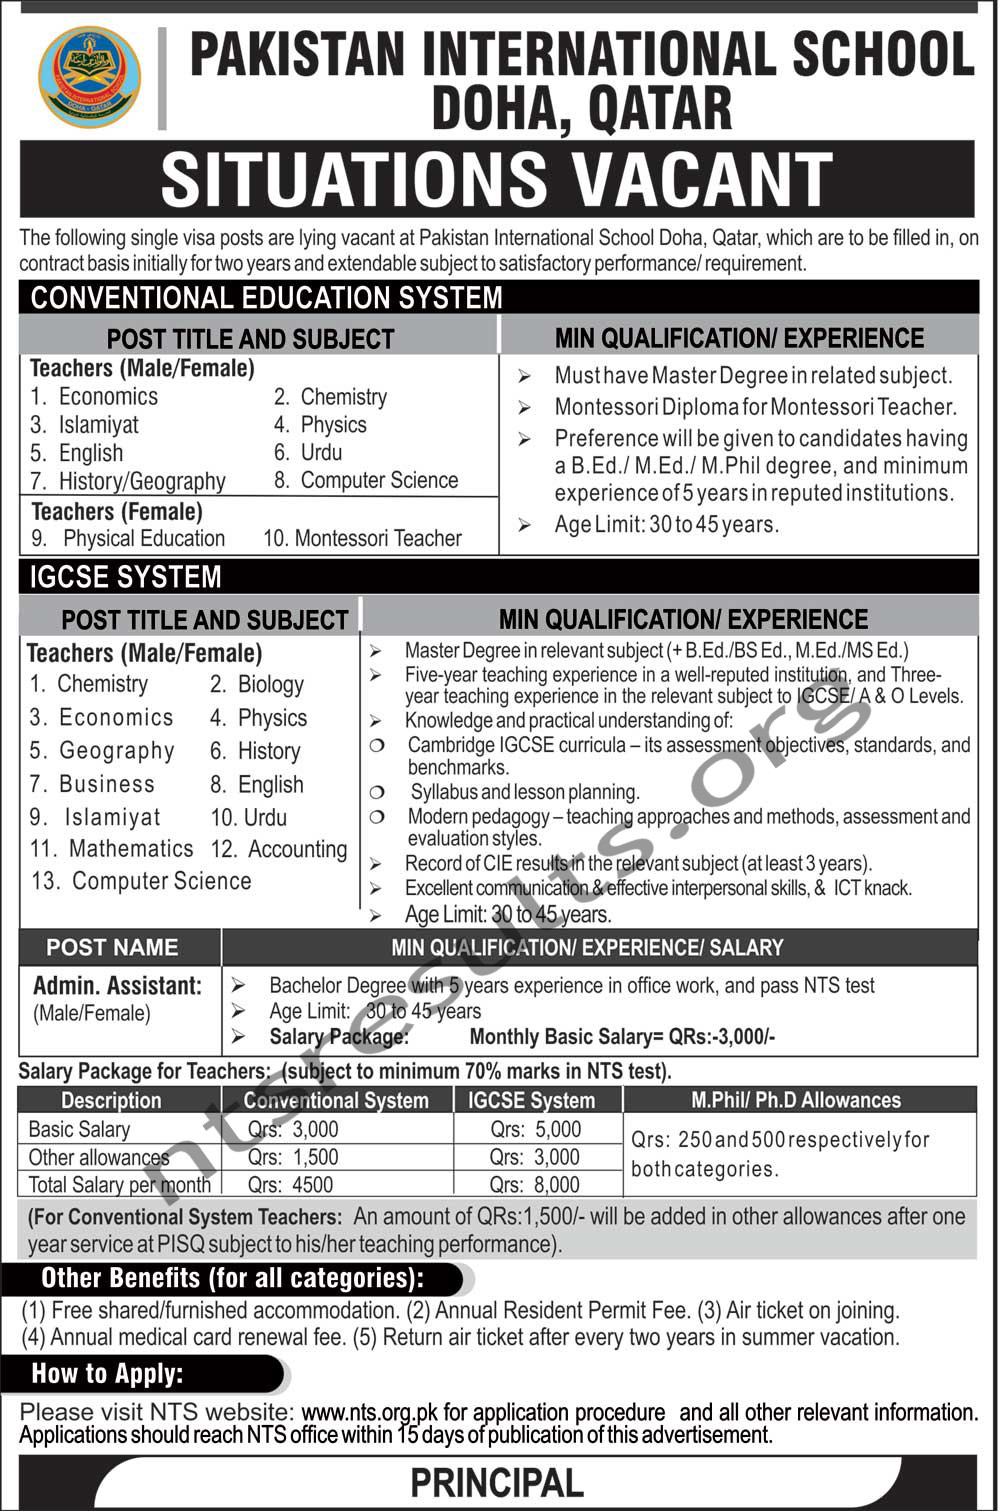 Pakistan International School Doha Qatar Jobs Via NTS